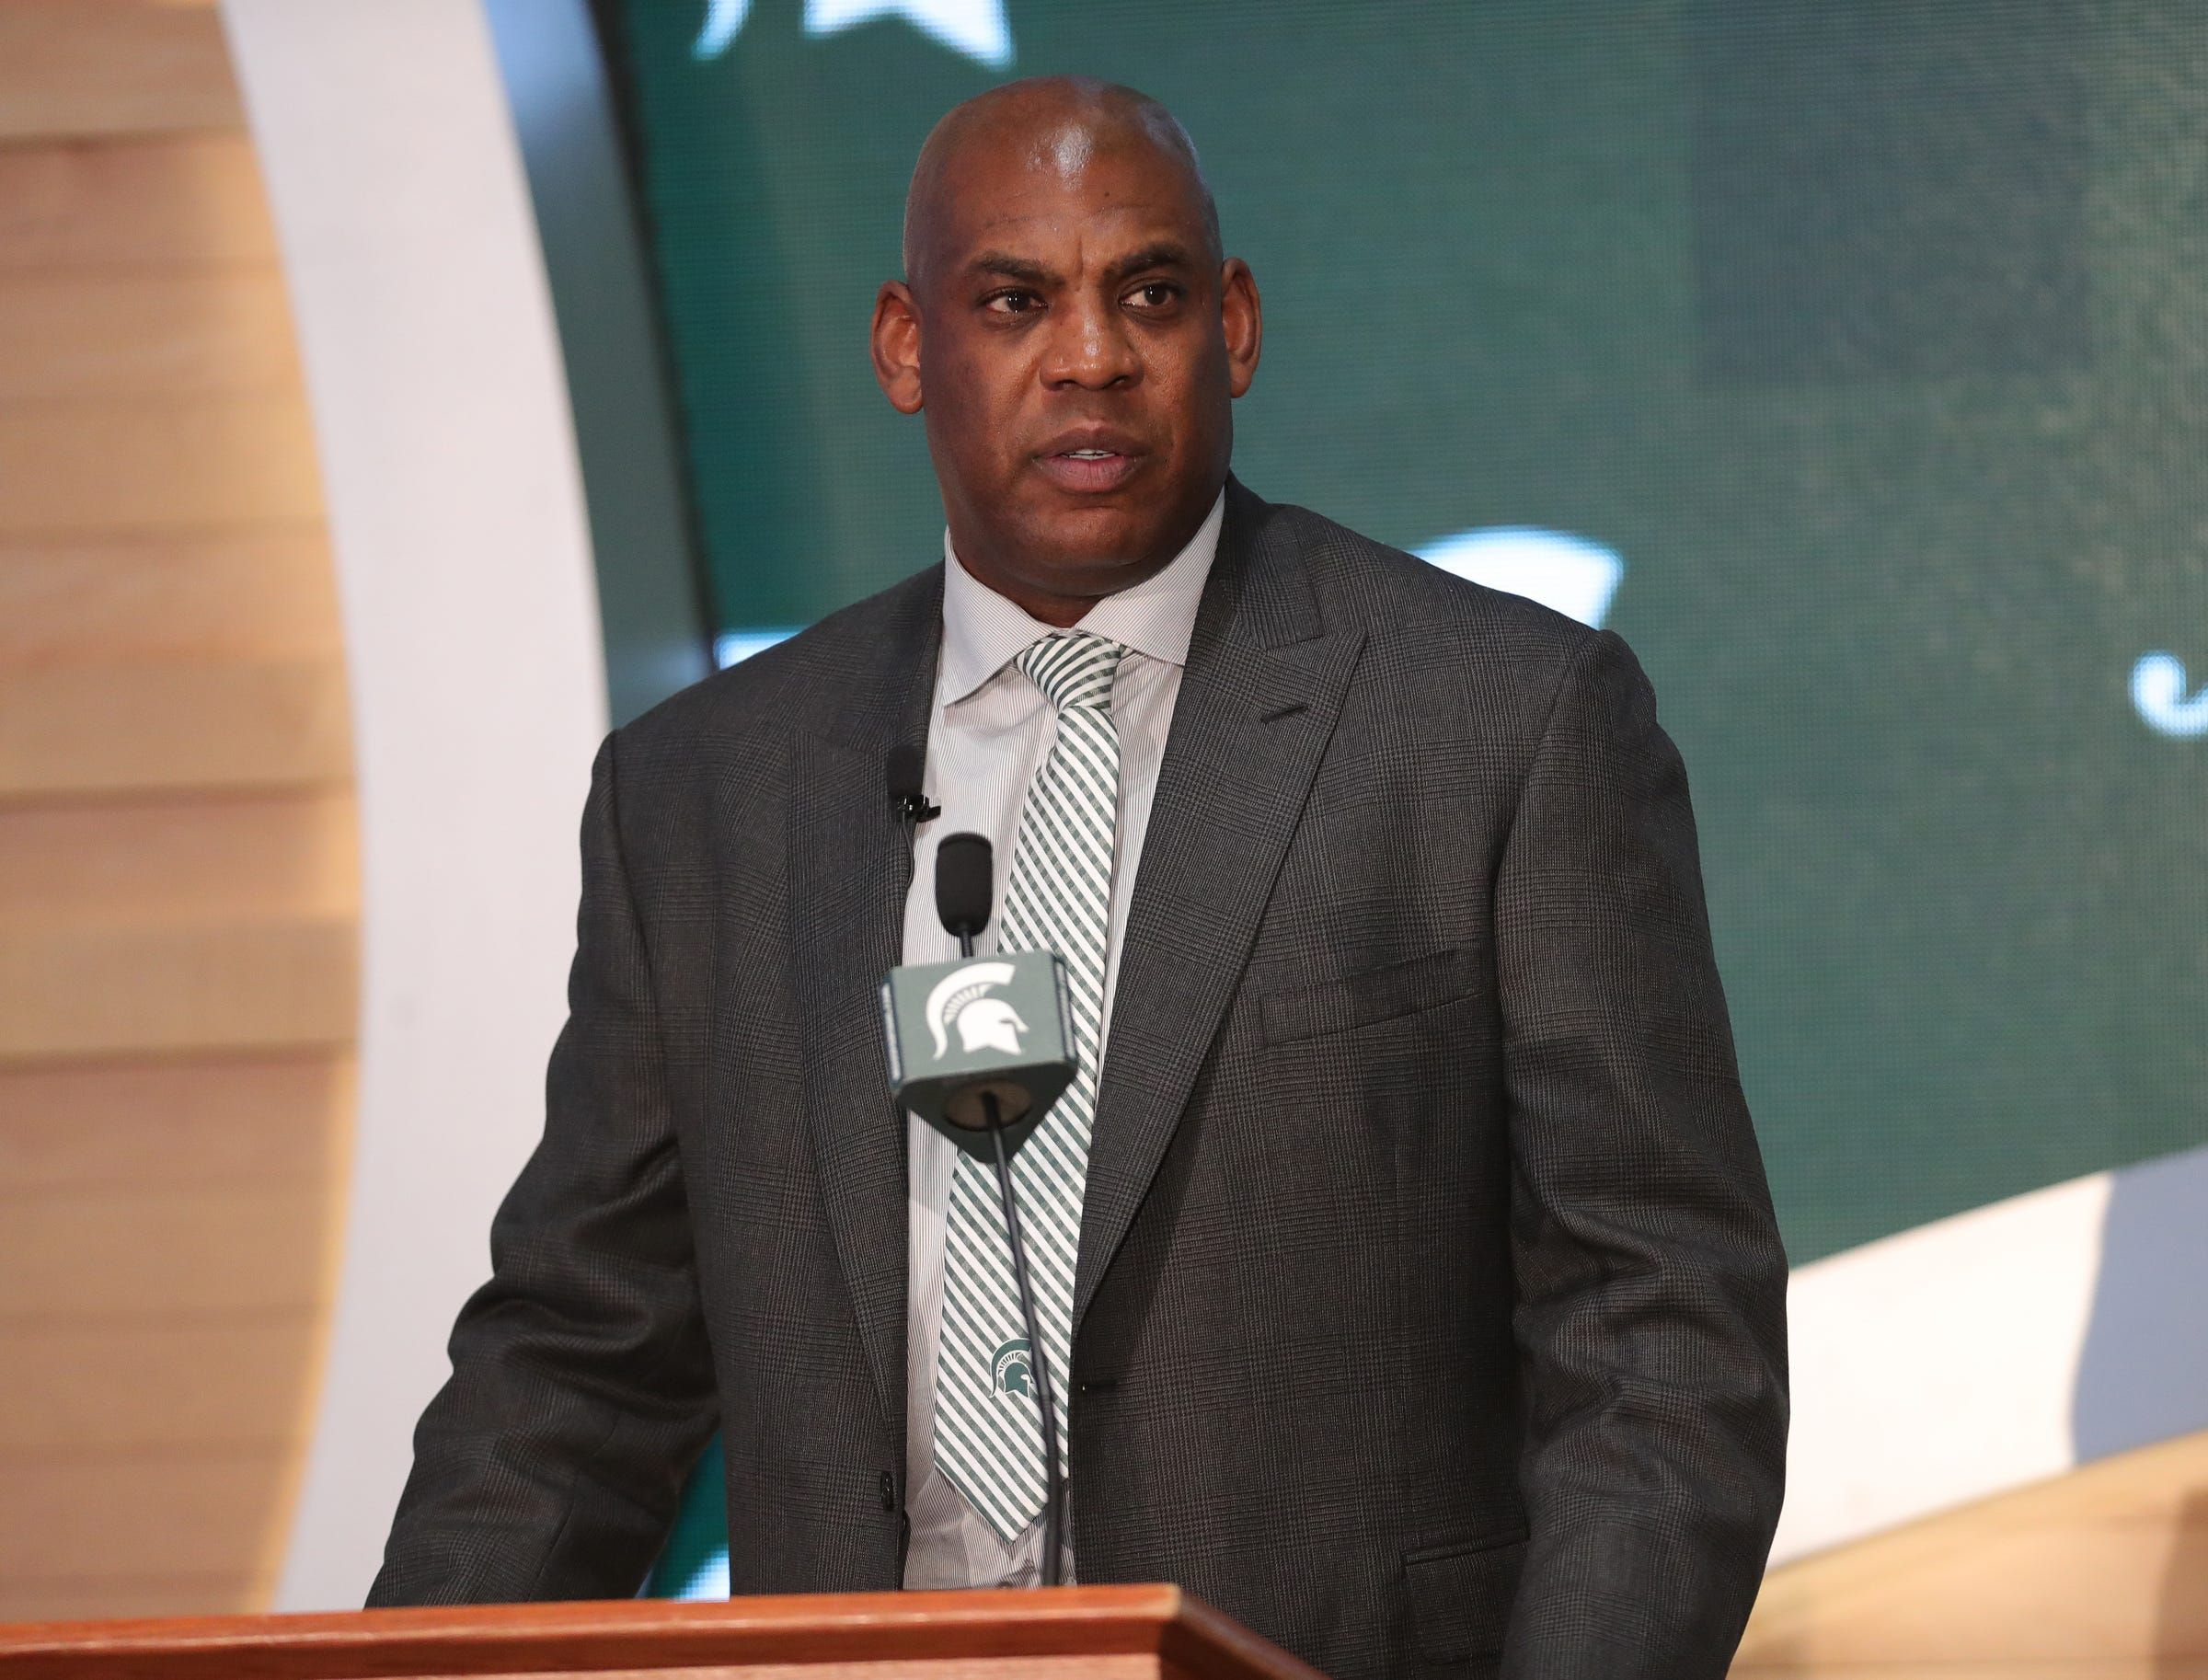 Mel Tucker Welcomed By Michigan State Football This Is The Right Time For Me To Be Here In 2020 Michigan State Football Football Coach Michigan State Spartans Football